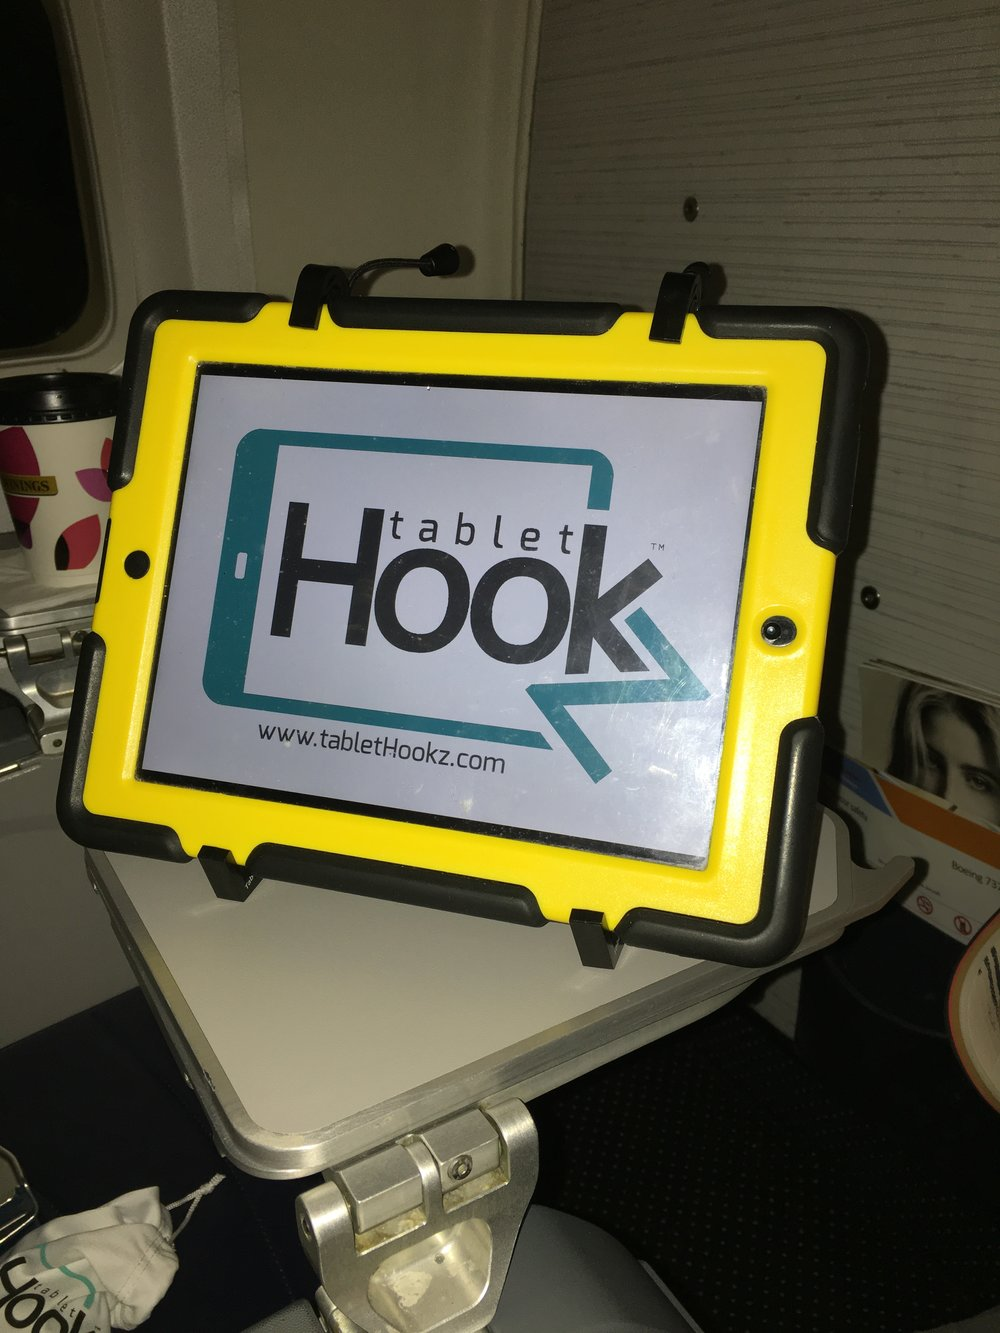 TabletHookz.com TabletHookz Tablet Hooks TabletHookz theairhook airhook tablet hook tablet stand Watch ipad on plane Watch movie on plane kids entertainment when travelling seatback entertainment